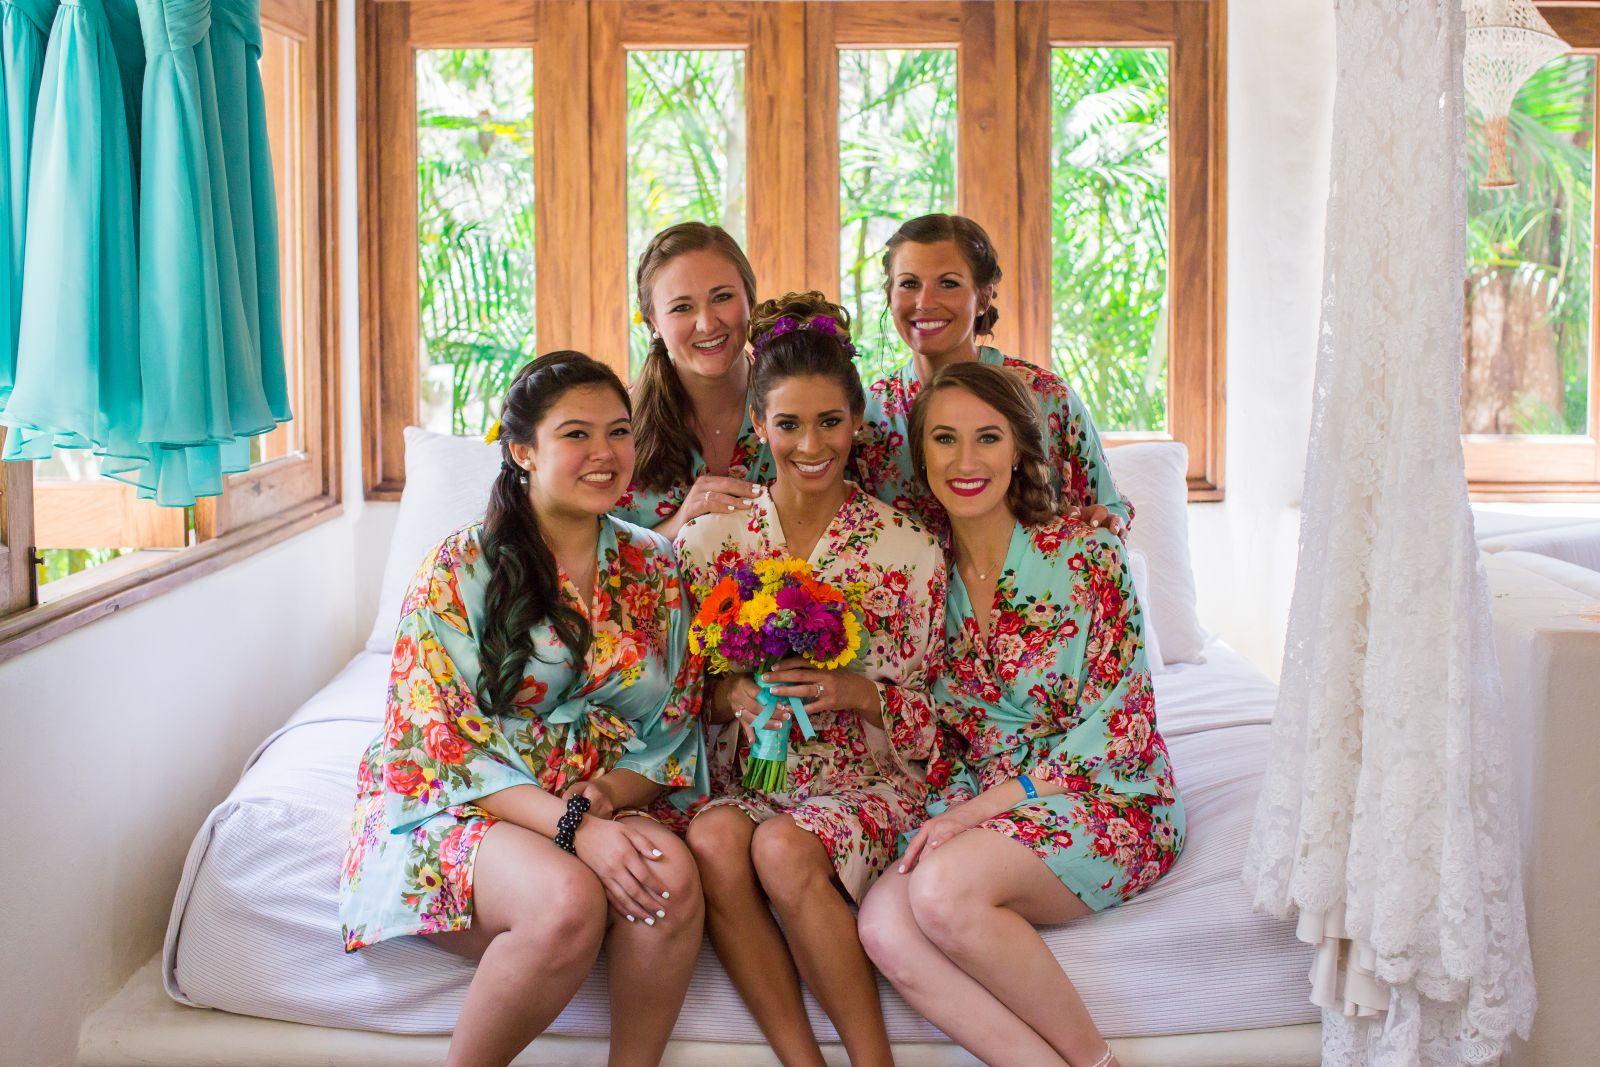 Bridal party getting ready.